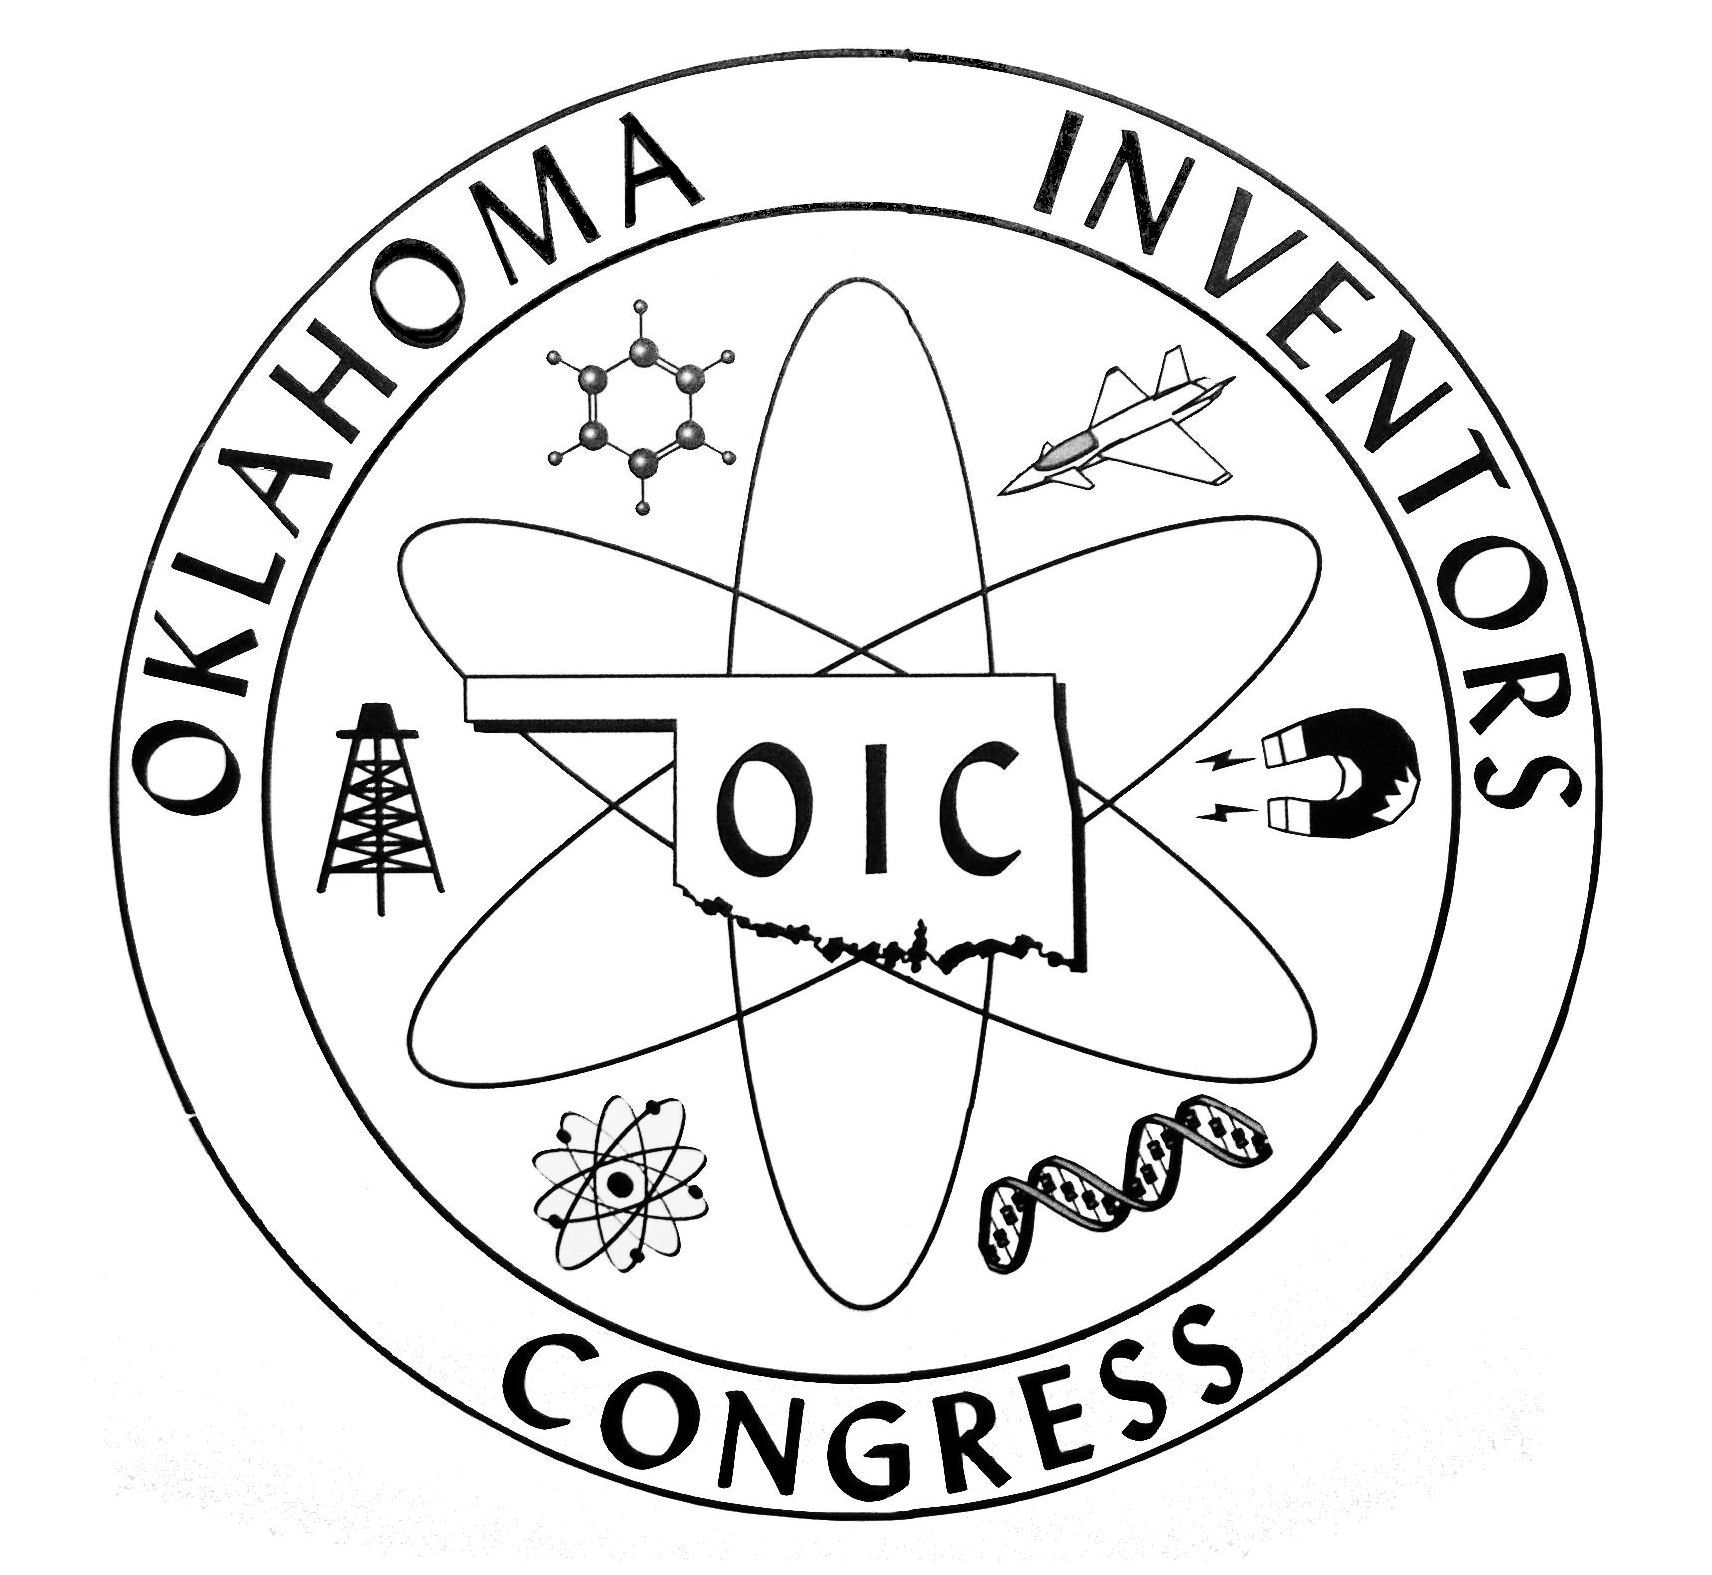 Annual meeting of Oklahoma Inventors Congress Saturday in Tulsa